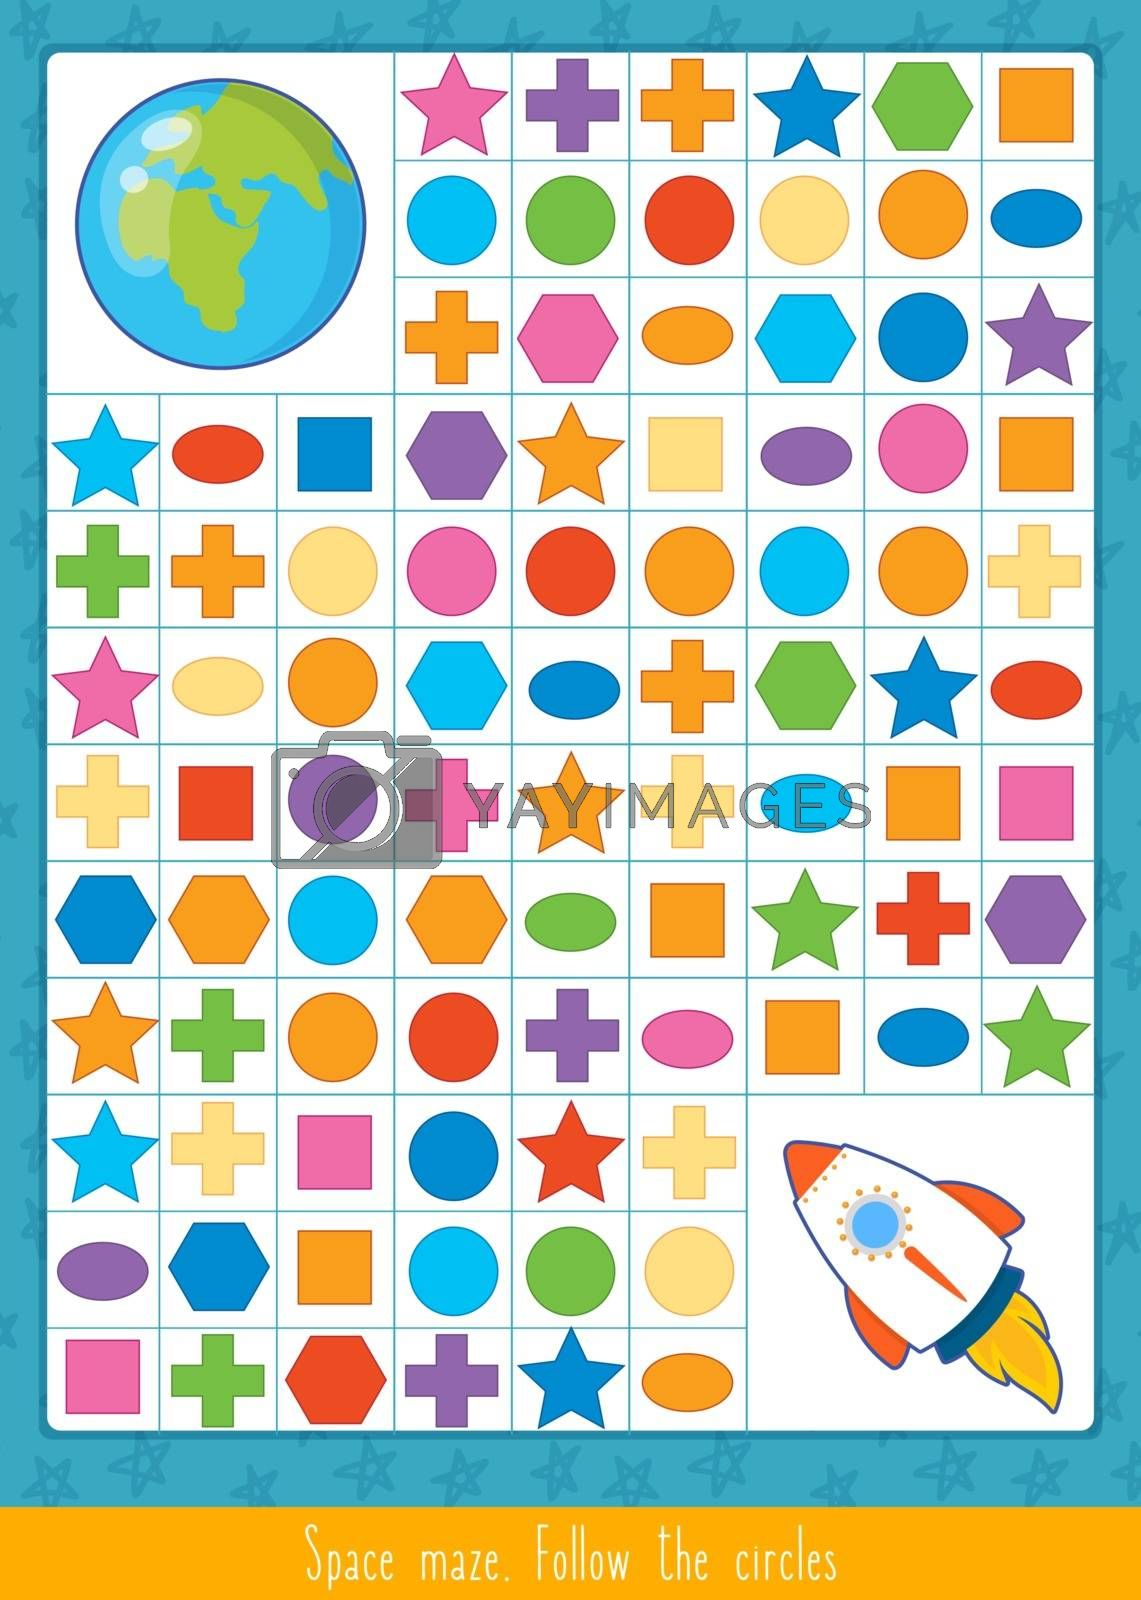 Educational children game, vector illustration. Puzzle for kids. Space maze